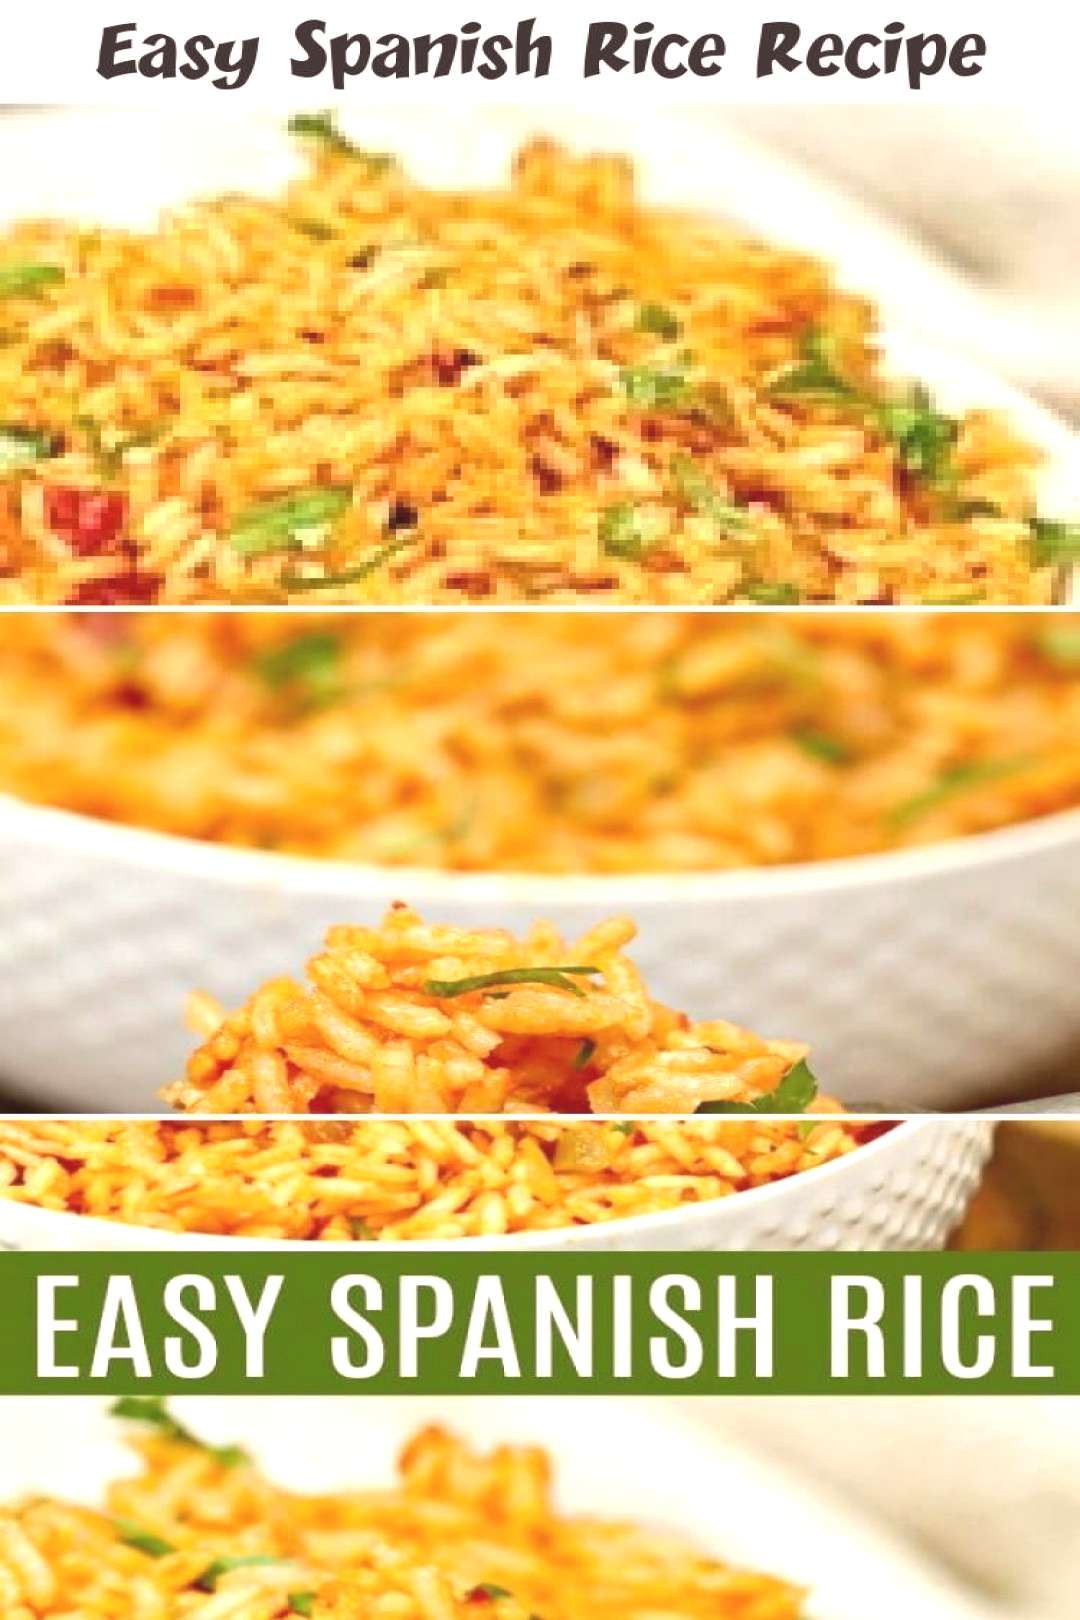 This homemade Spanish rice recipe tastes just like the restaurants ... -...   - ... - Spanish Rice